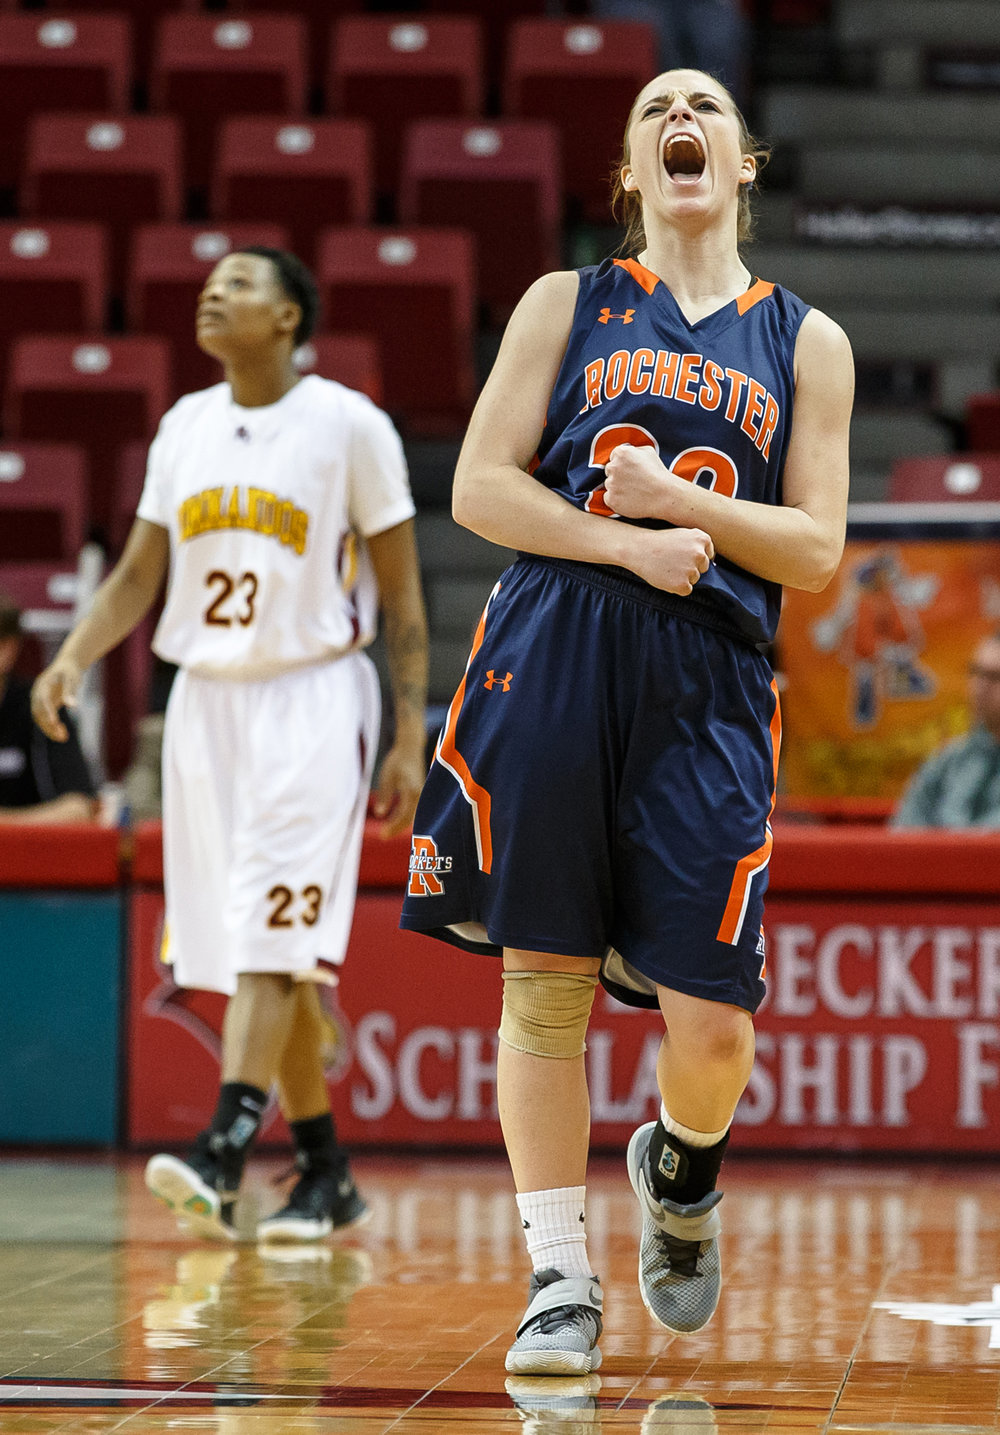 Rochester's Aubrey Magro (20) roars out as the Rockets take their lead into the closing minute of the game against Chicago Marshall in the fourth quarter of the IHSA Class 3A Girls State Basketball Tournament semifinals at Redbird Arena, Friday, March 3, 2017, in Normal, Ill. [Justin L. Fowler/The State Journal-Register